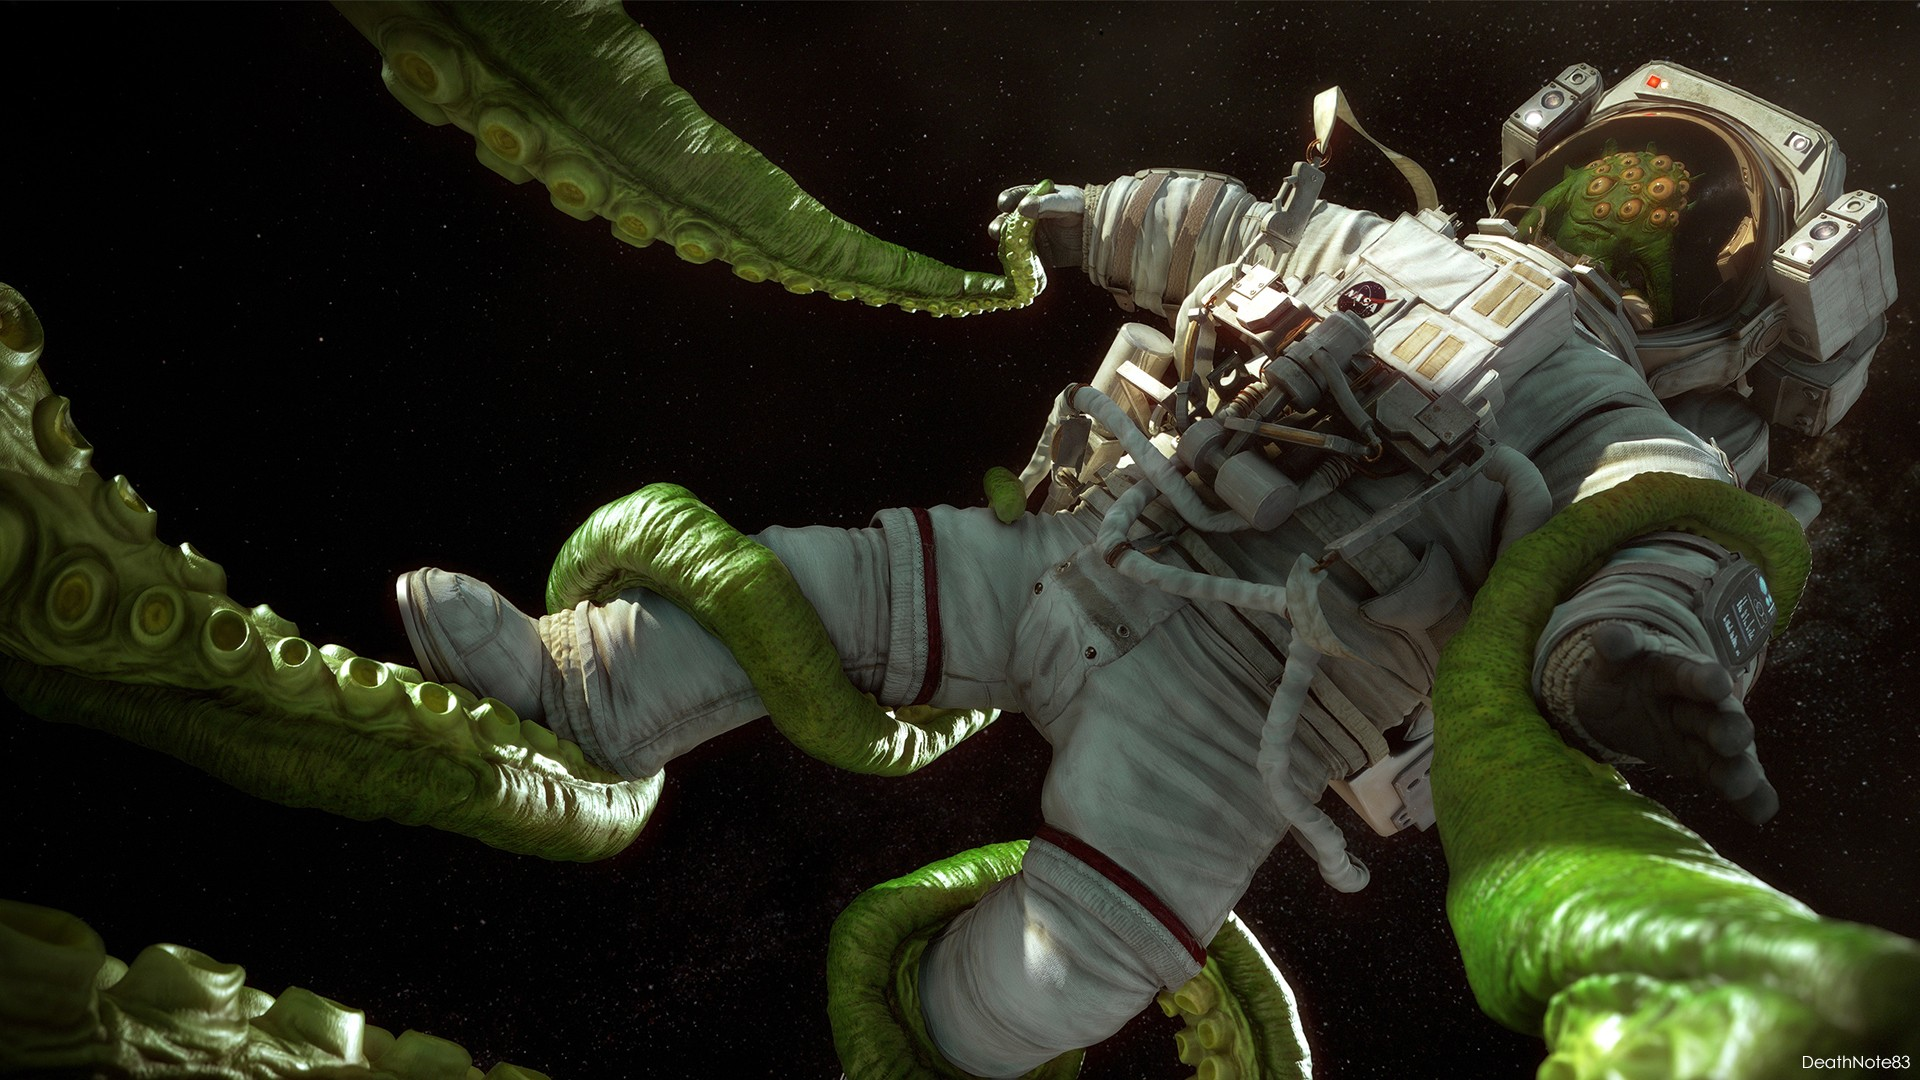 Astronaut Iphone Wallpaper Astronaut Full Hd Wallpaper And Background 1920x1080